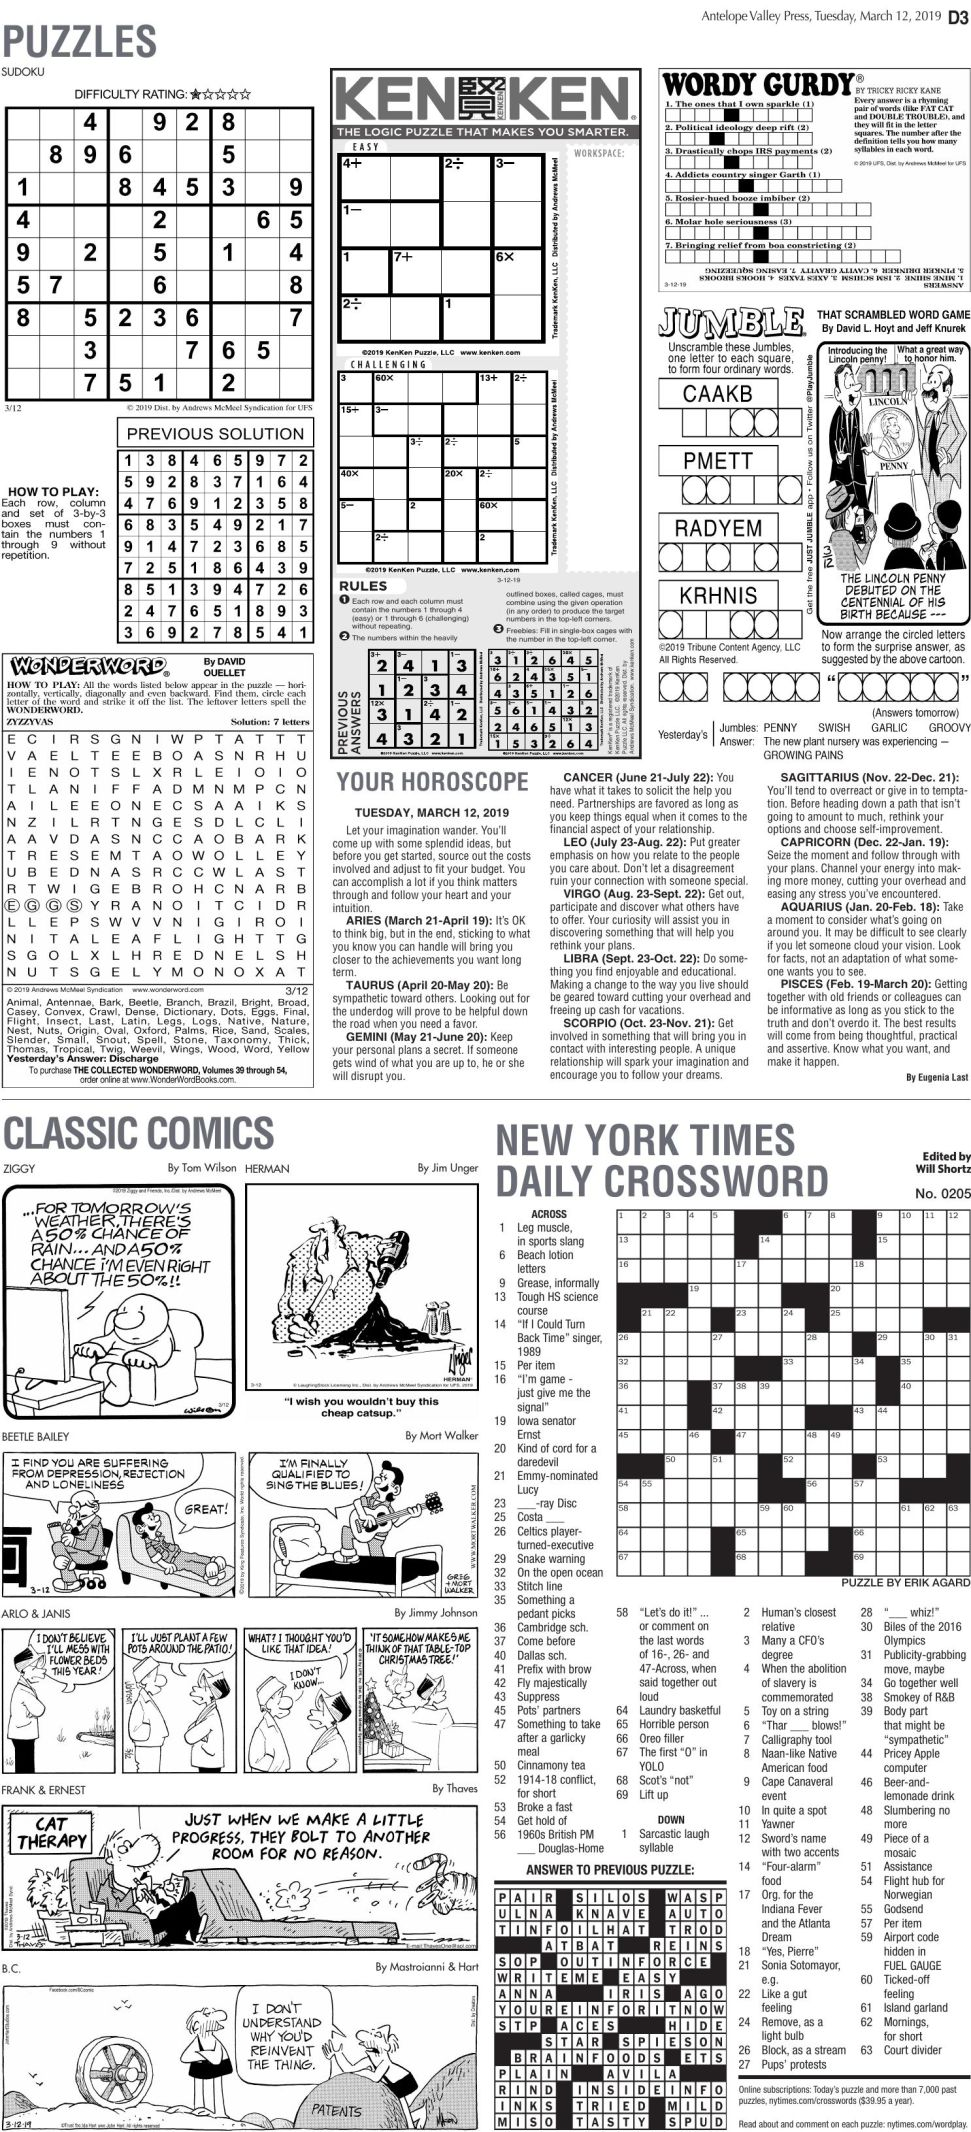 March 12, 2019 Puzzles